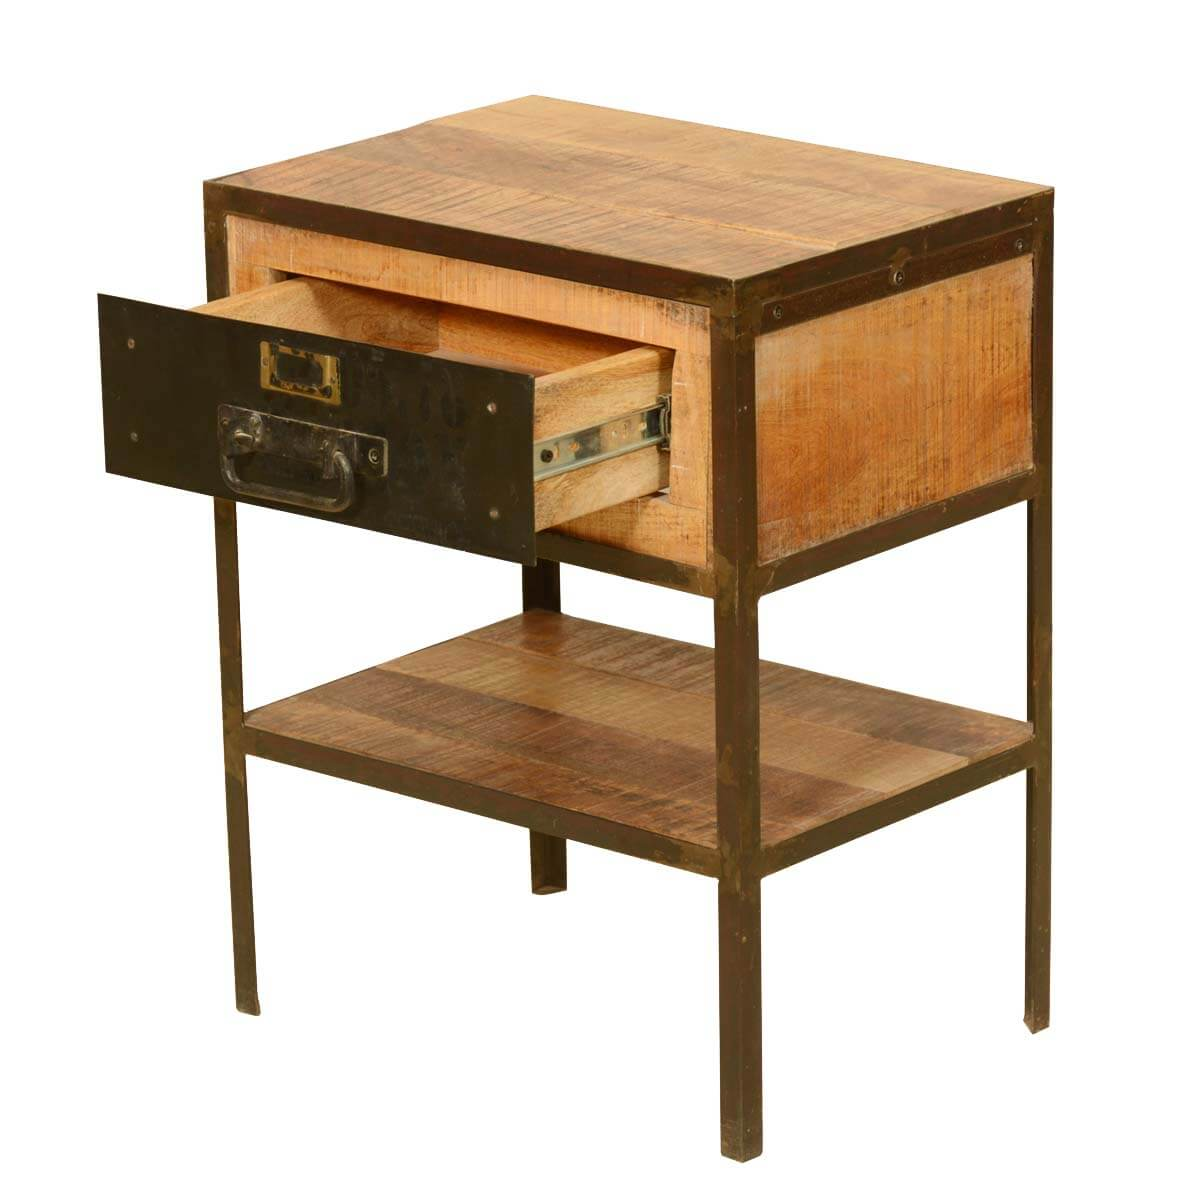 Rustic industrial fusion solid wood iron 2 tier end table for Rustic industrial end table